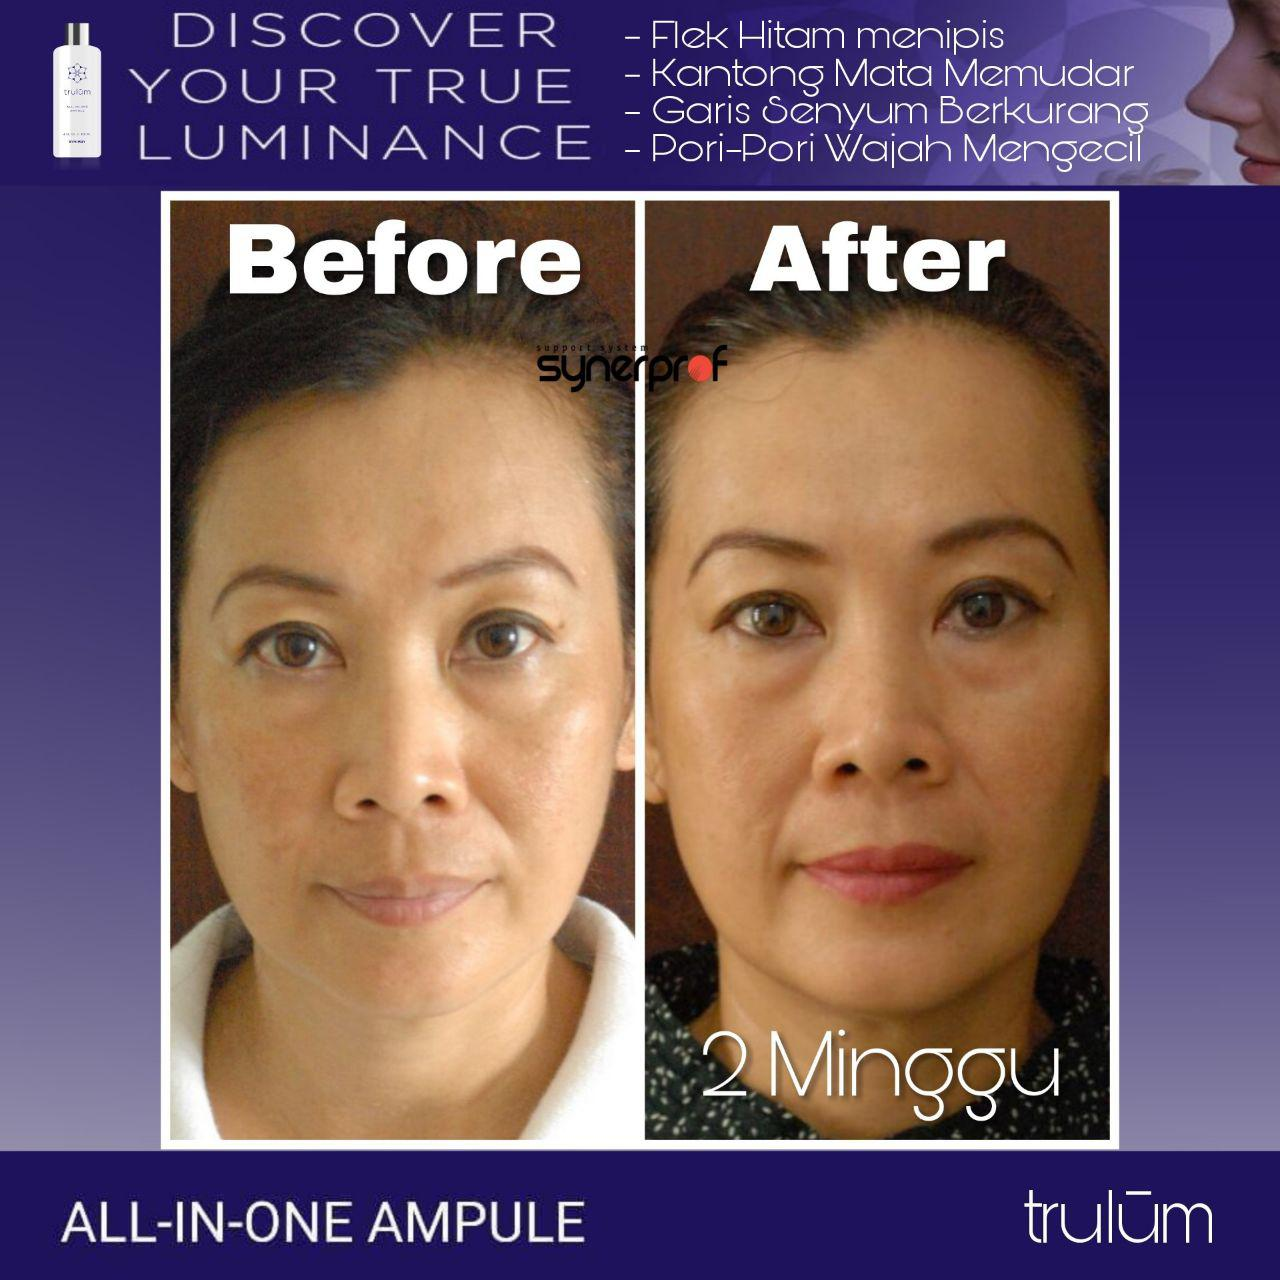 Jual Trulum All In One Ampoule Di Bandar Negeri Suoh WA: 08112338376